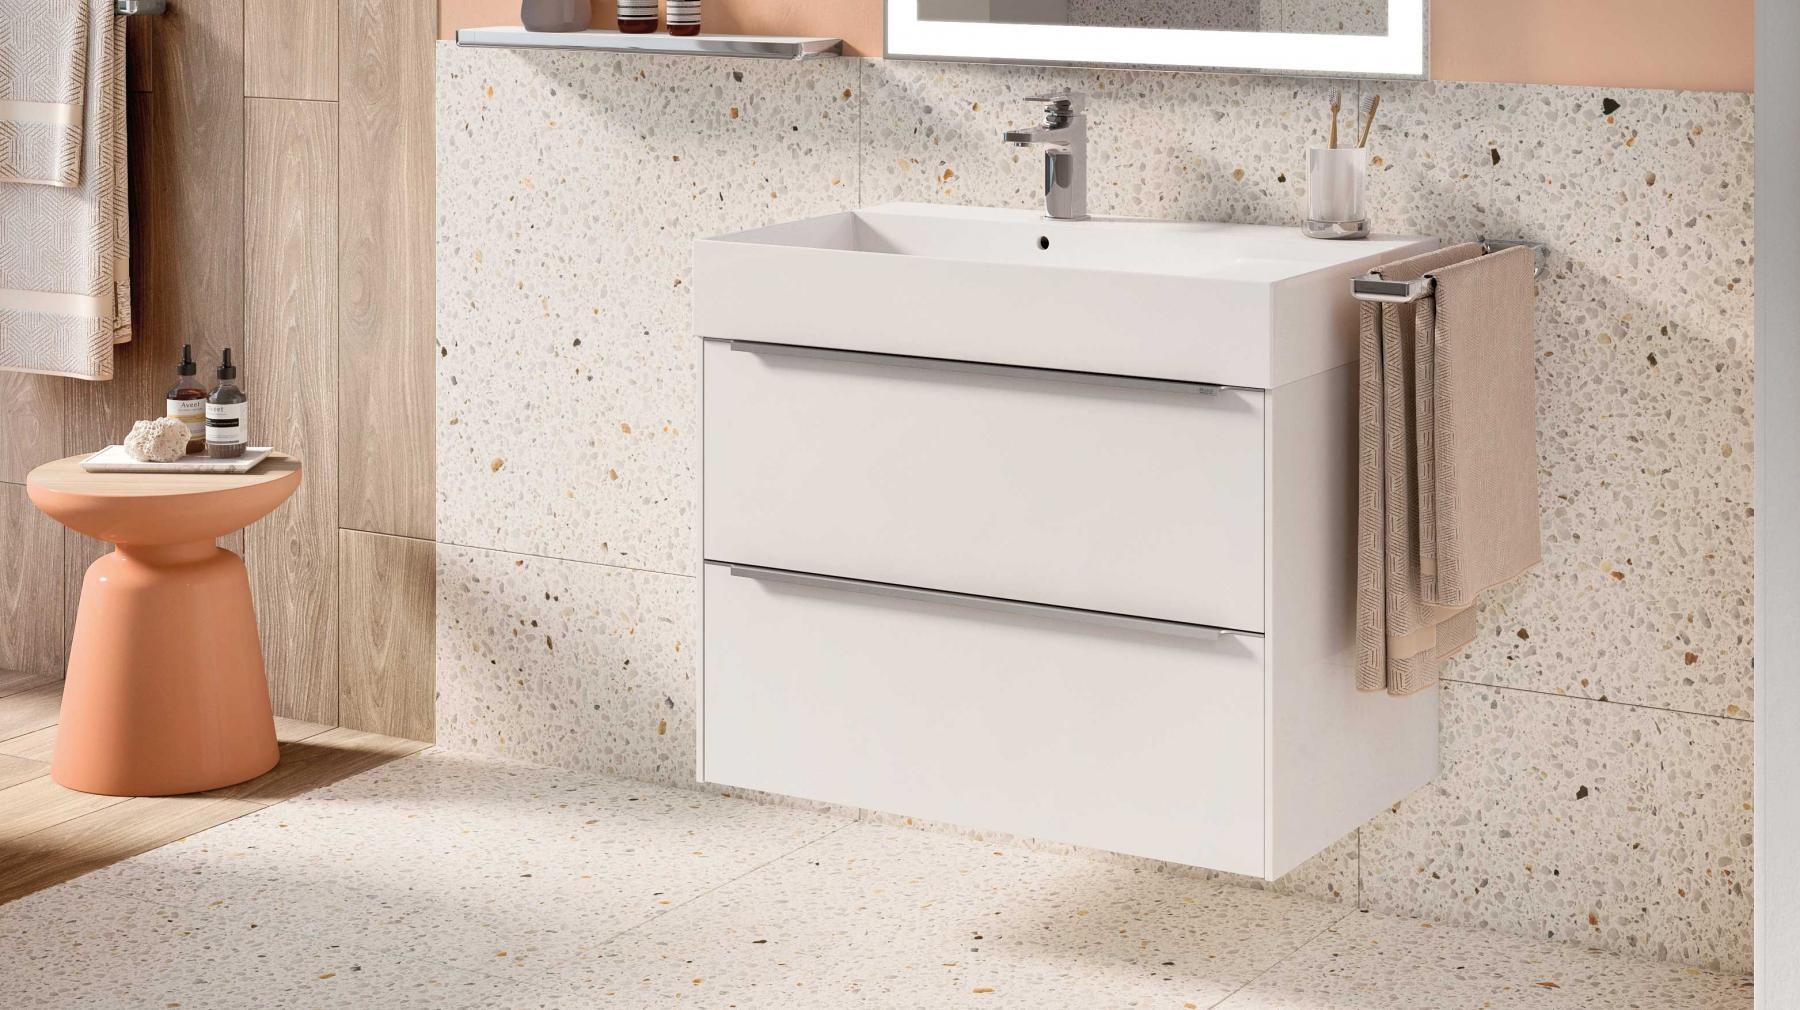 Find The Right Basin Under Counter Or Wall Mounted